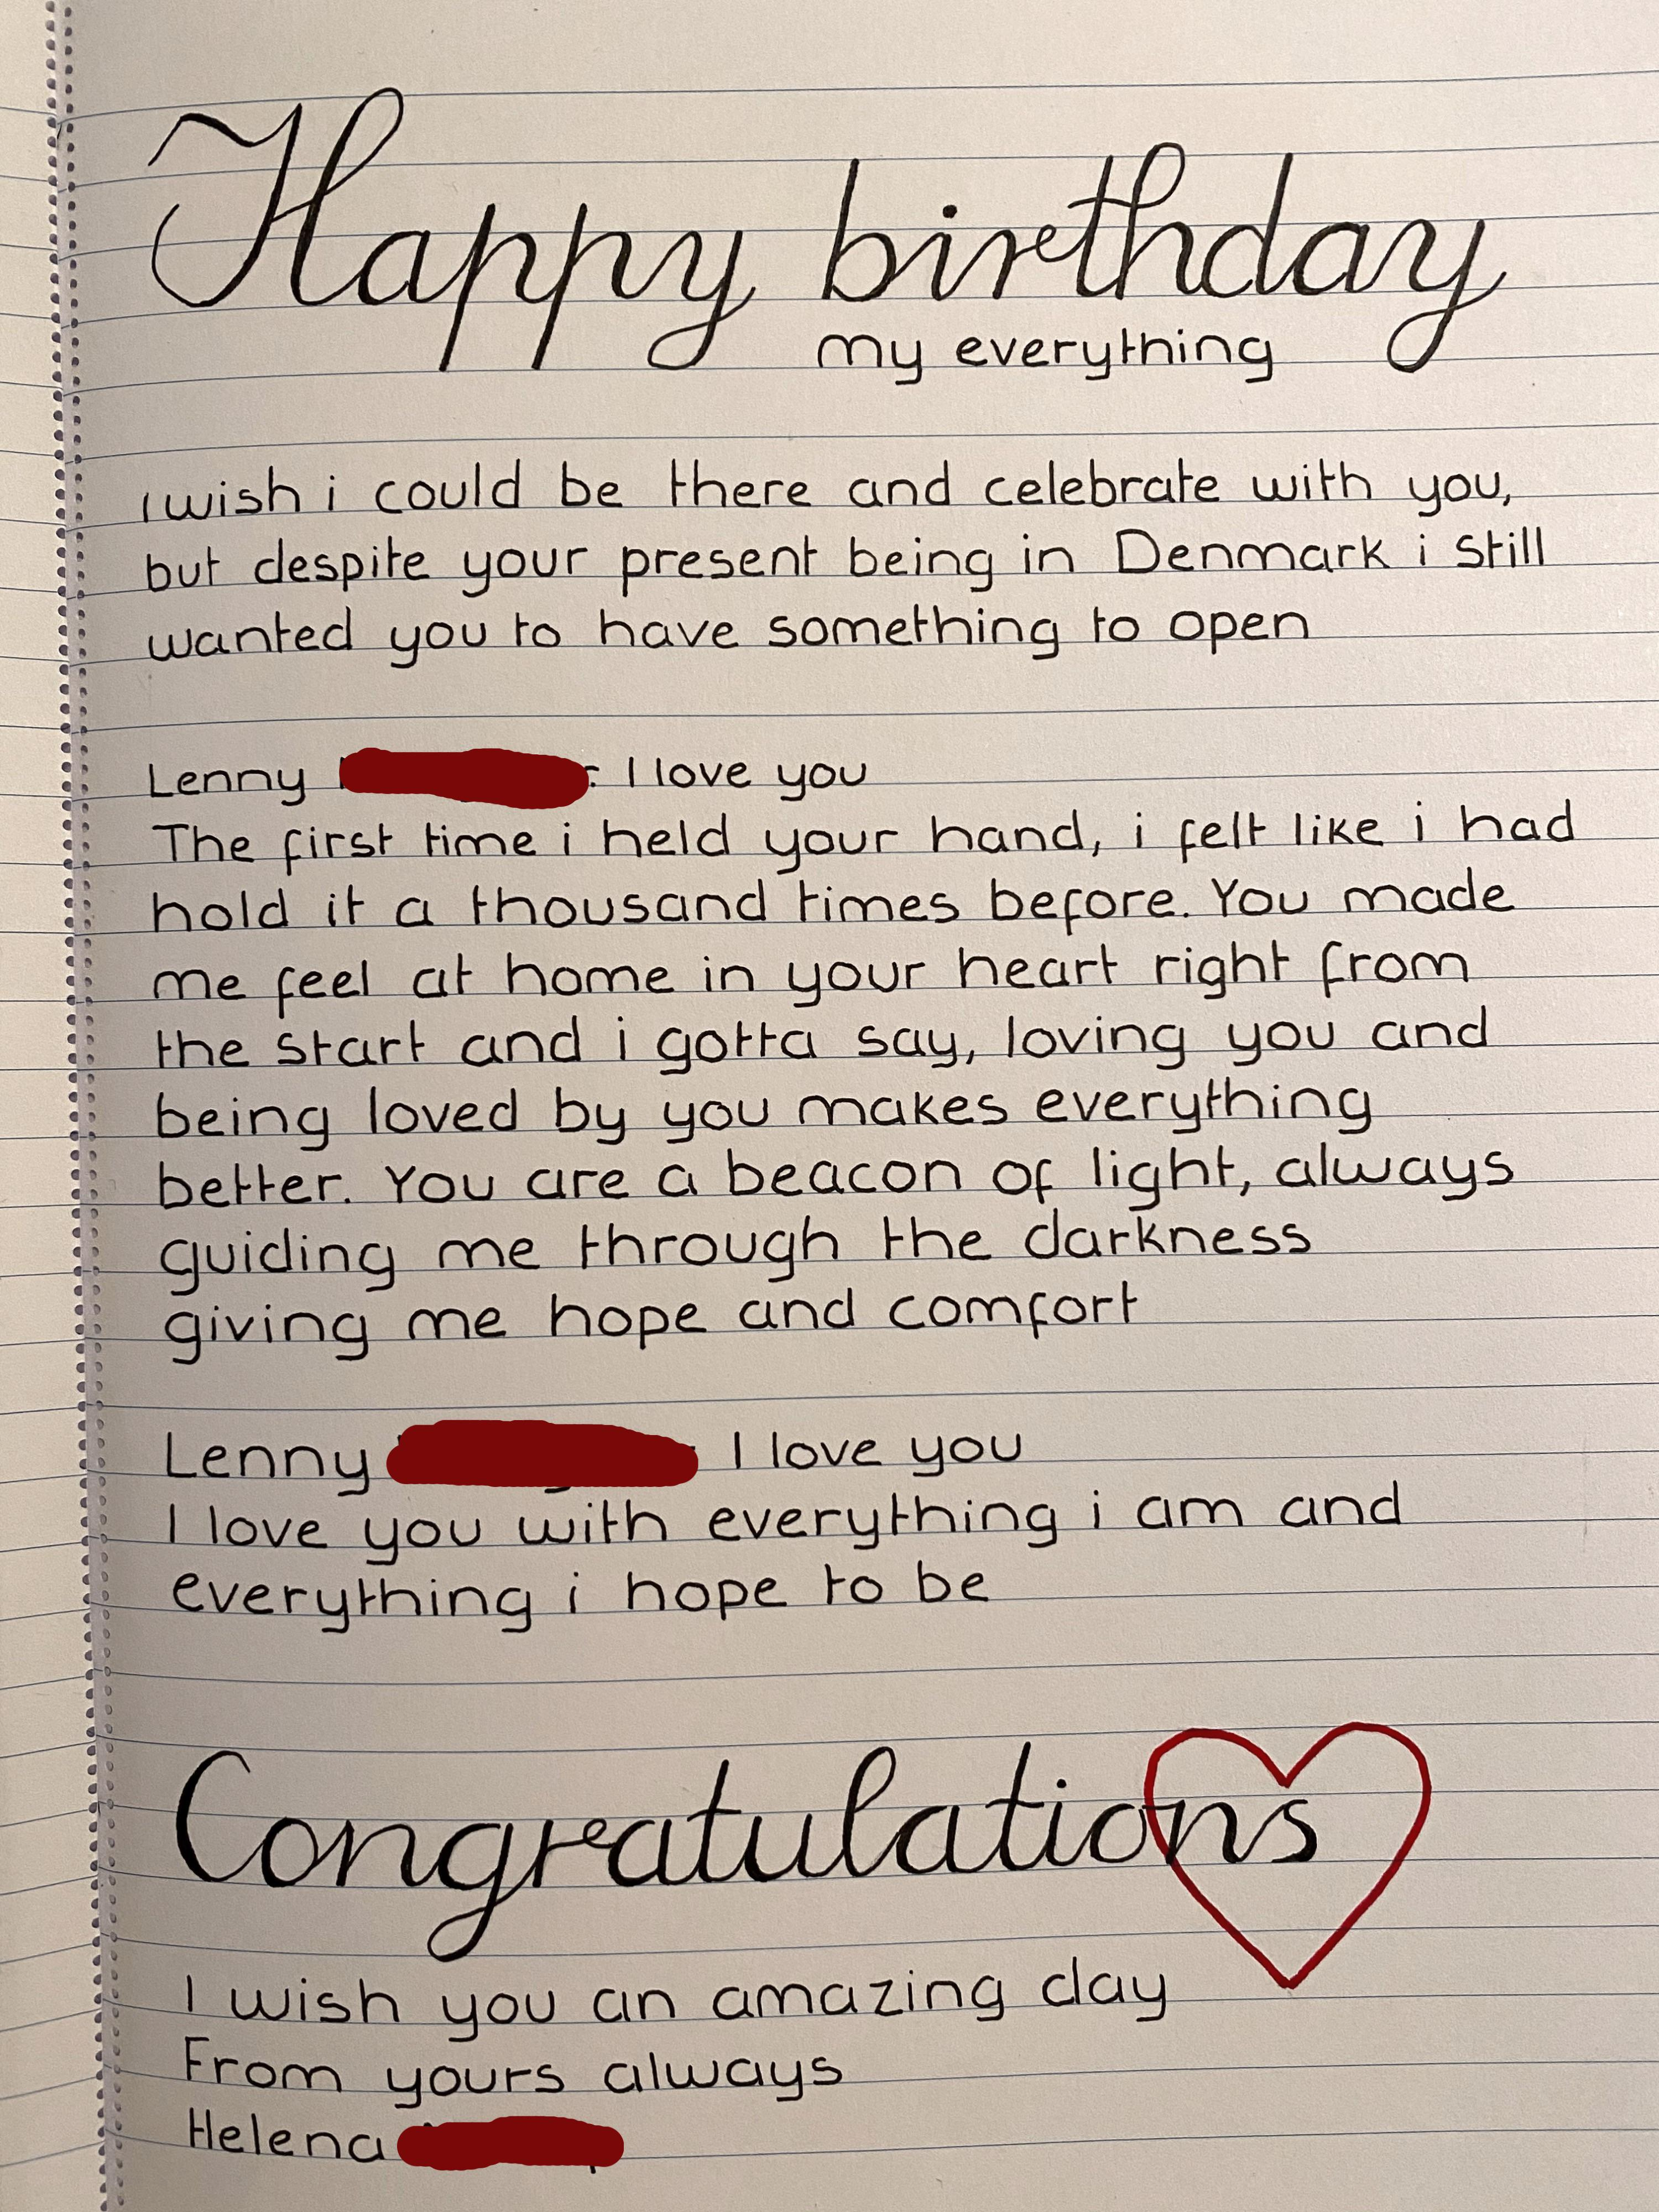 Wrote A Birthday Love Letter To My Boyfriend In Uk English Isn T My First Language And I Just Now Realised Now It S Full Of Grammar Mistakes Is It Too Bad